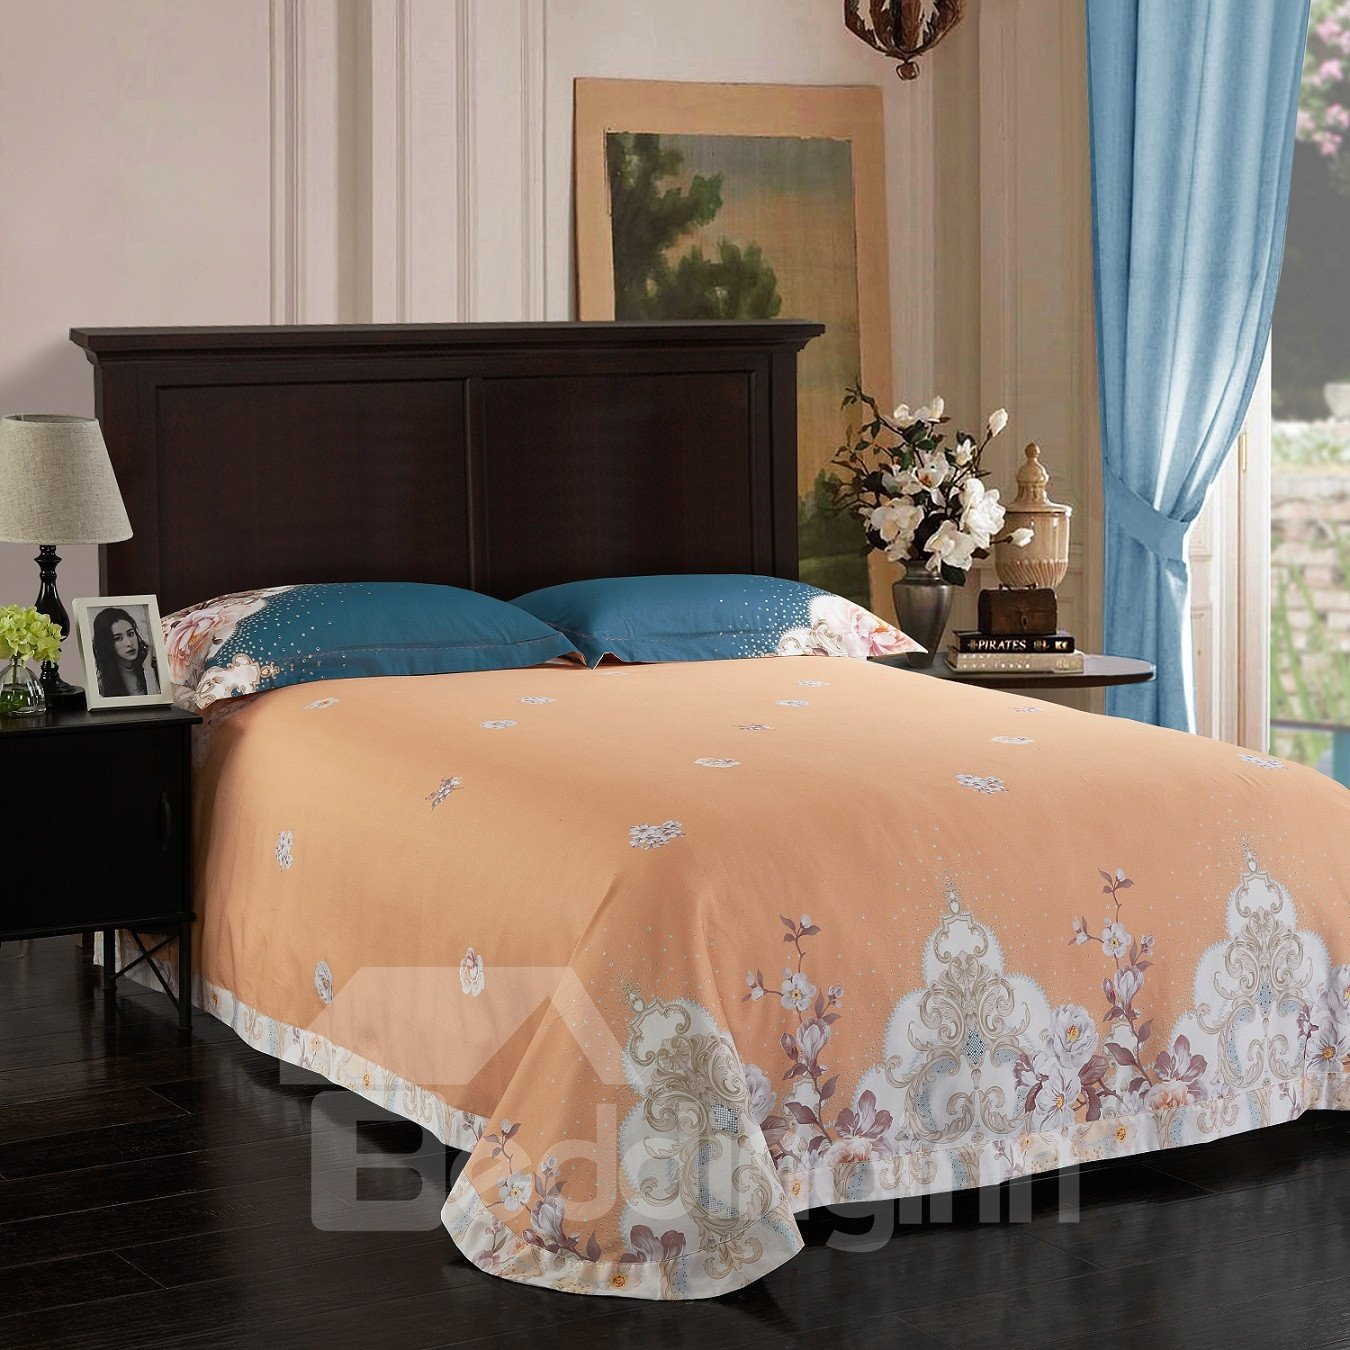 Splendid and Dreamy Peonies Blooming Pattern Cotton 4-Piece Bedding Sets/Duvet Cover